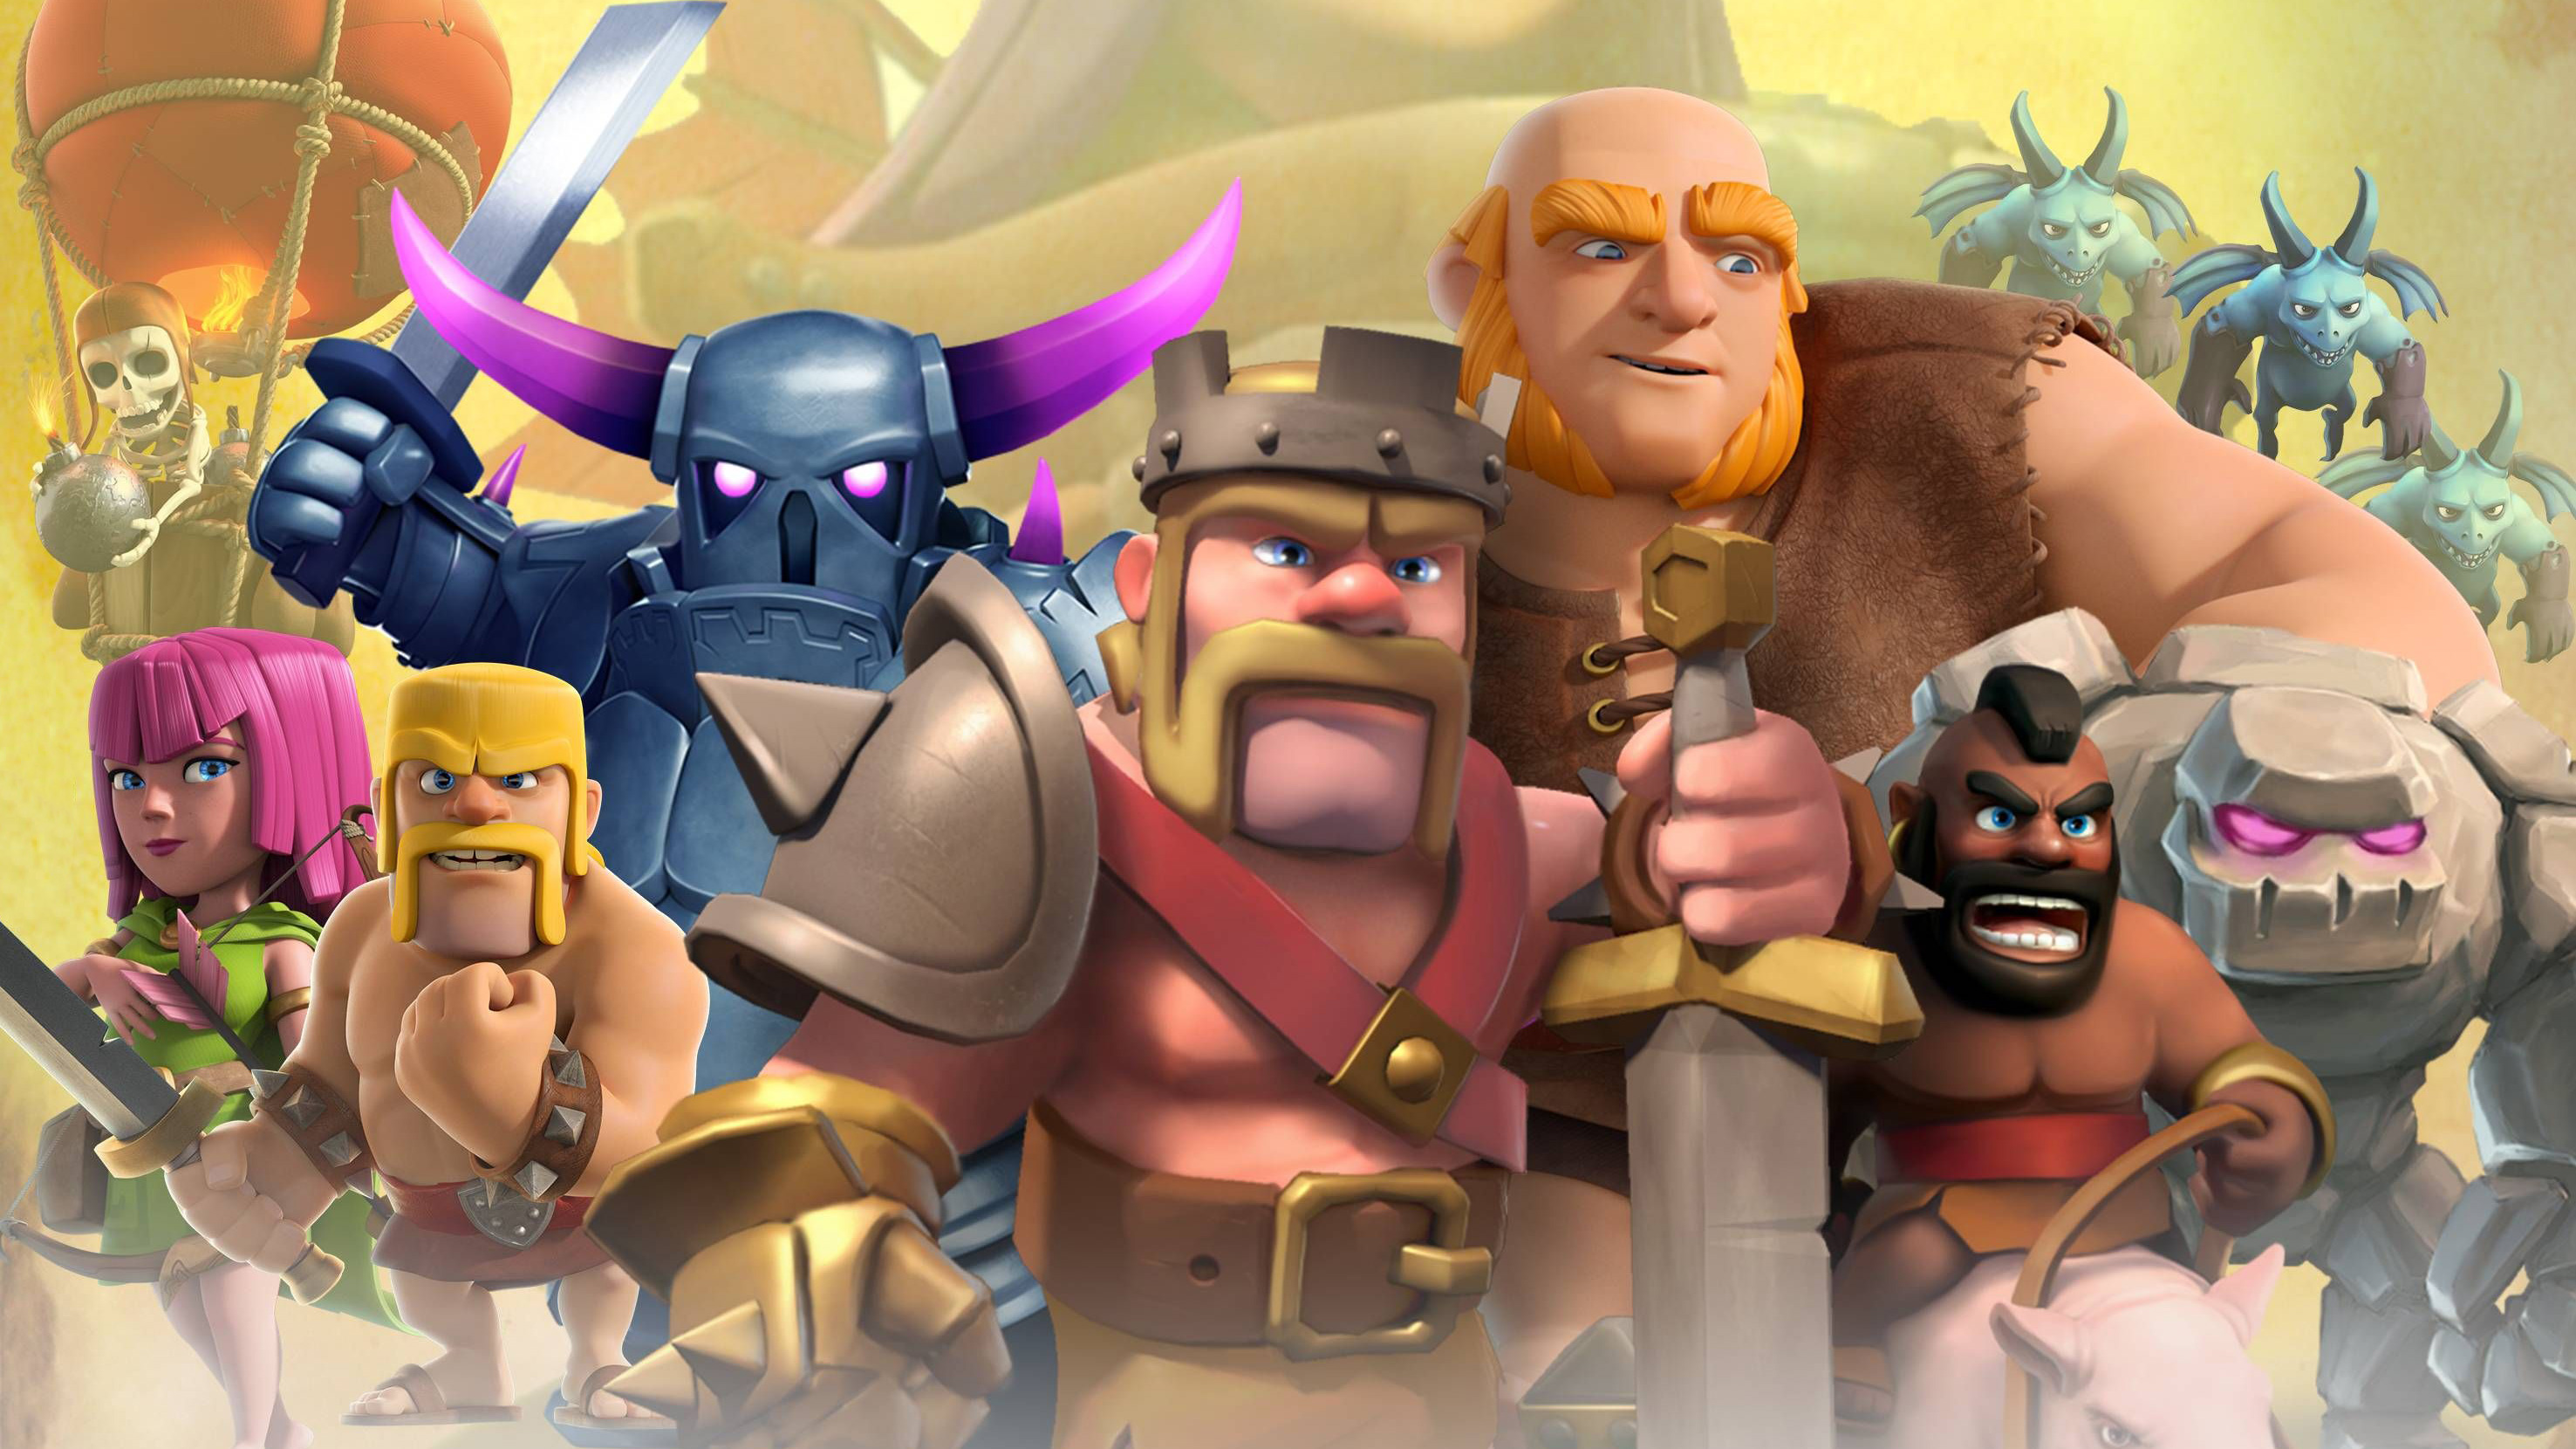 Barbarian Clash Of Clans Hd Hd Games 4k Wallpapers: 2560x1440 Clash Of Clans Mobile Game 1440P Resolution HD